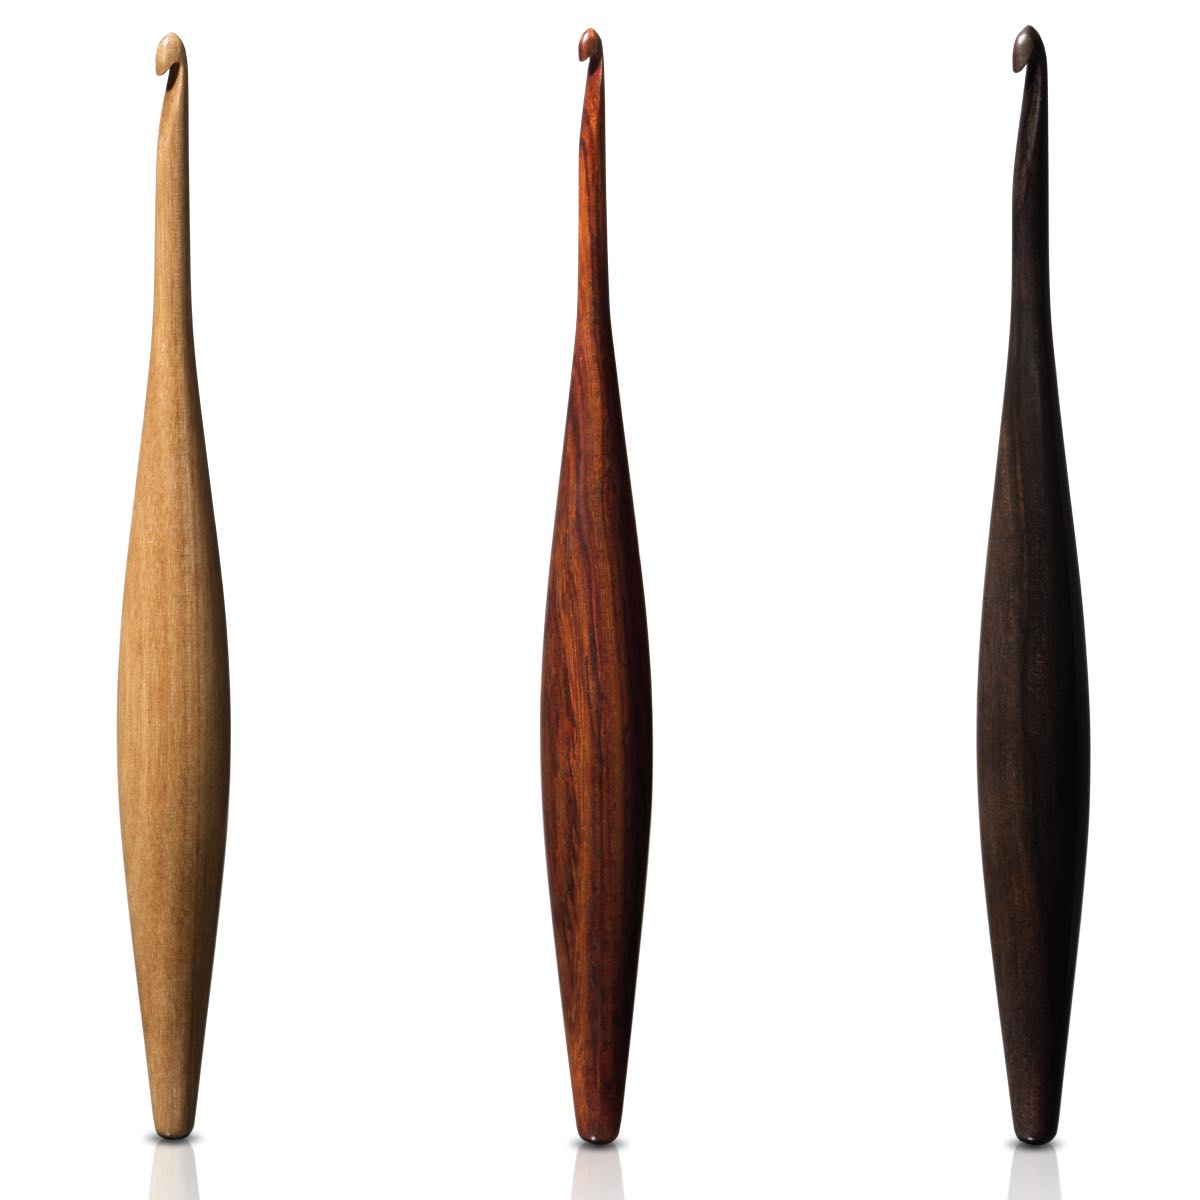 G Furls :Streamline Ebony Crochet Hook: 4.0 mm